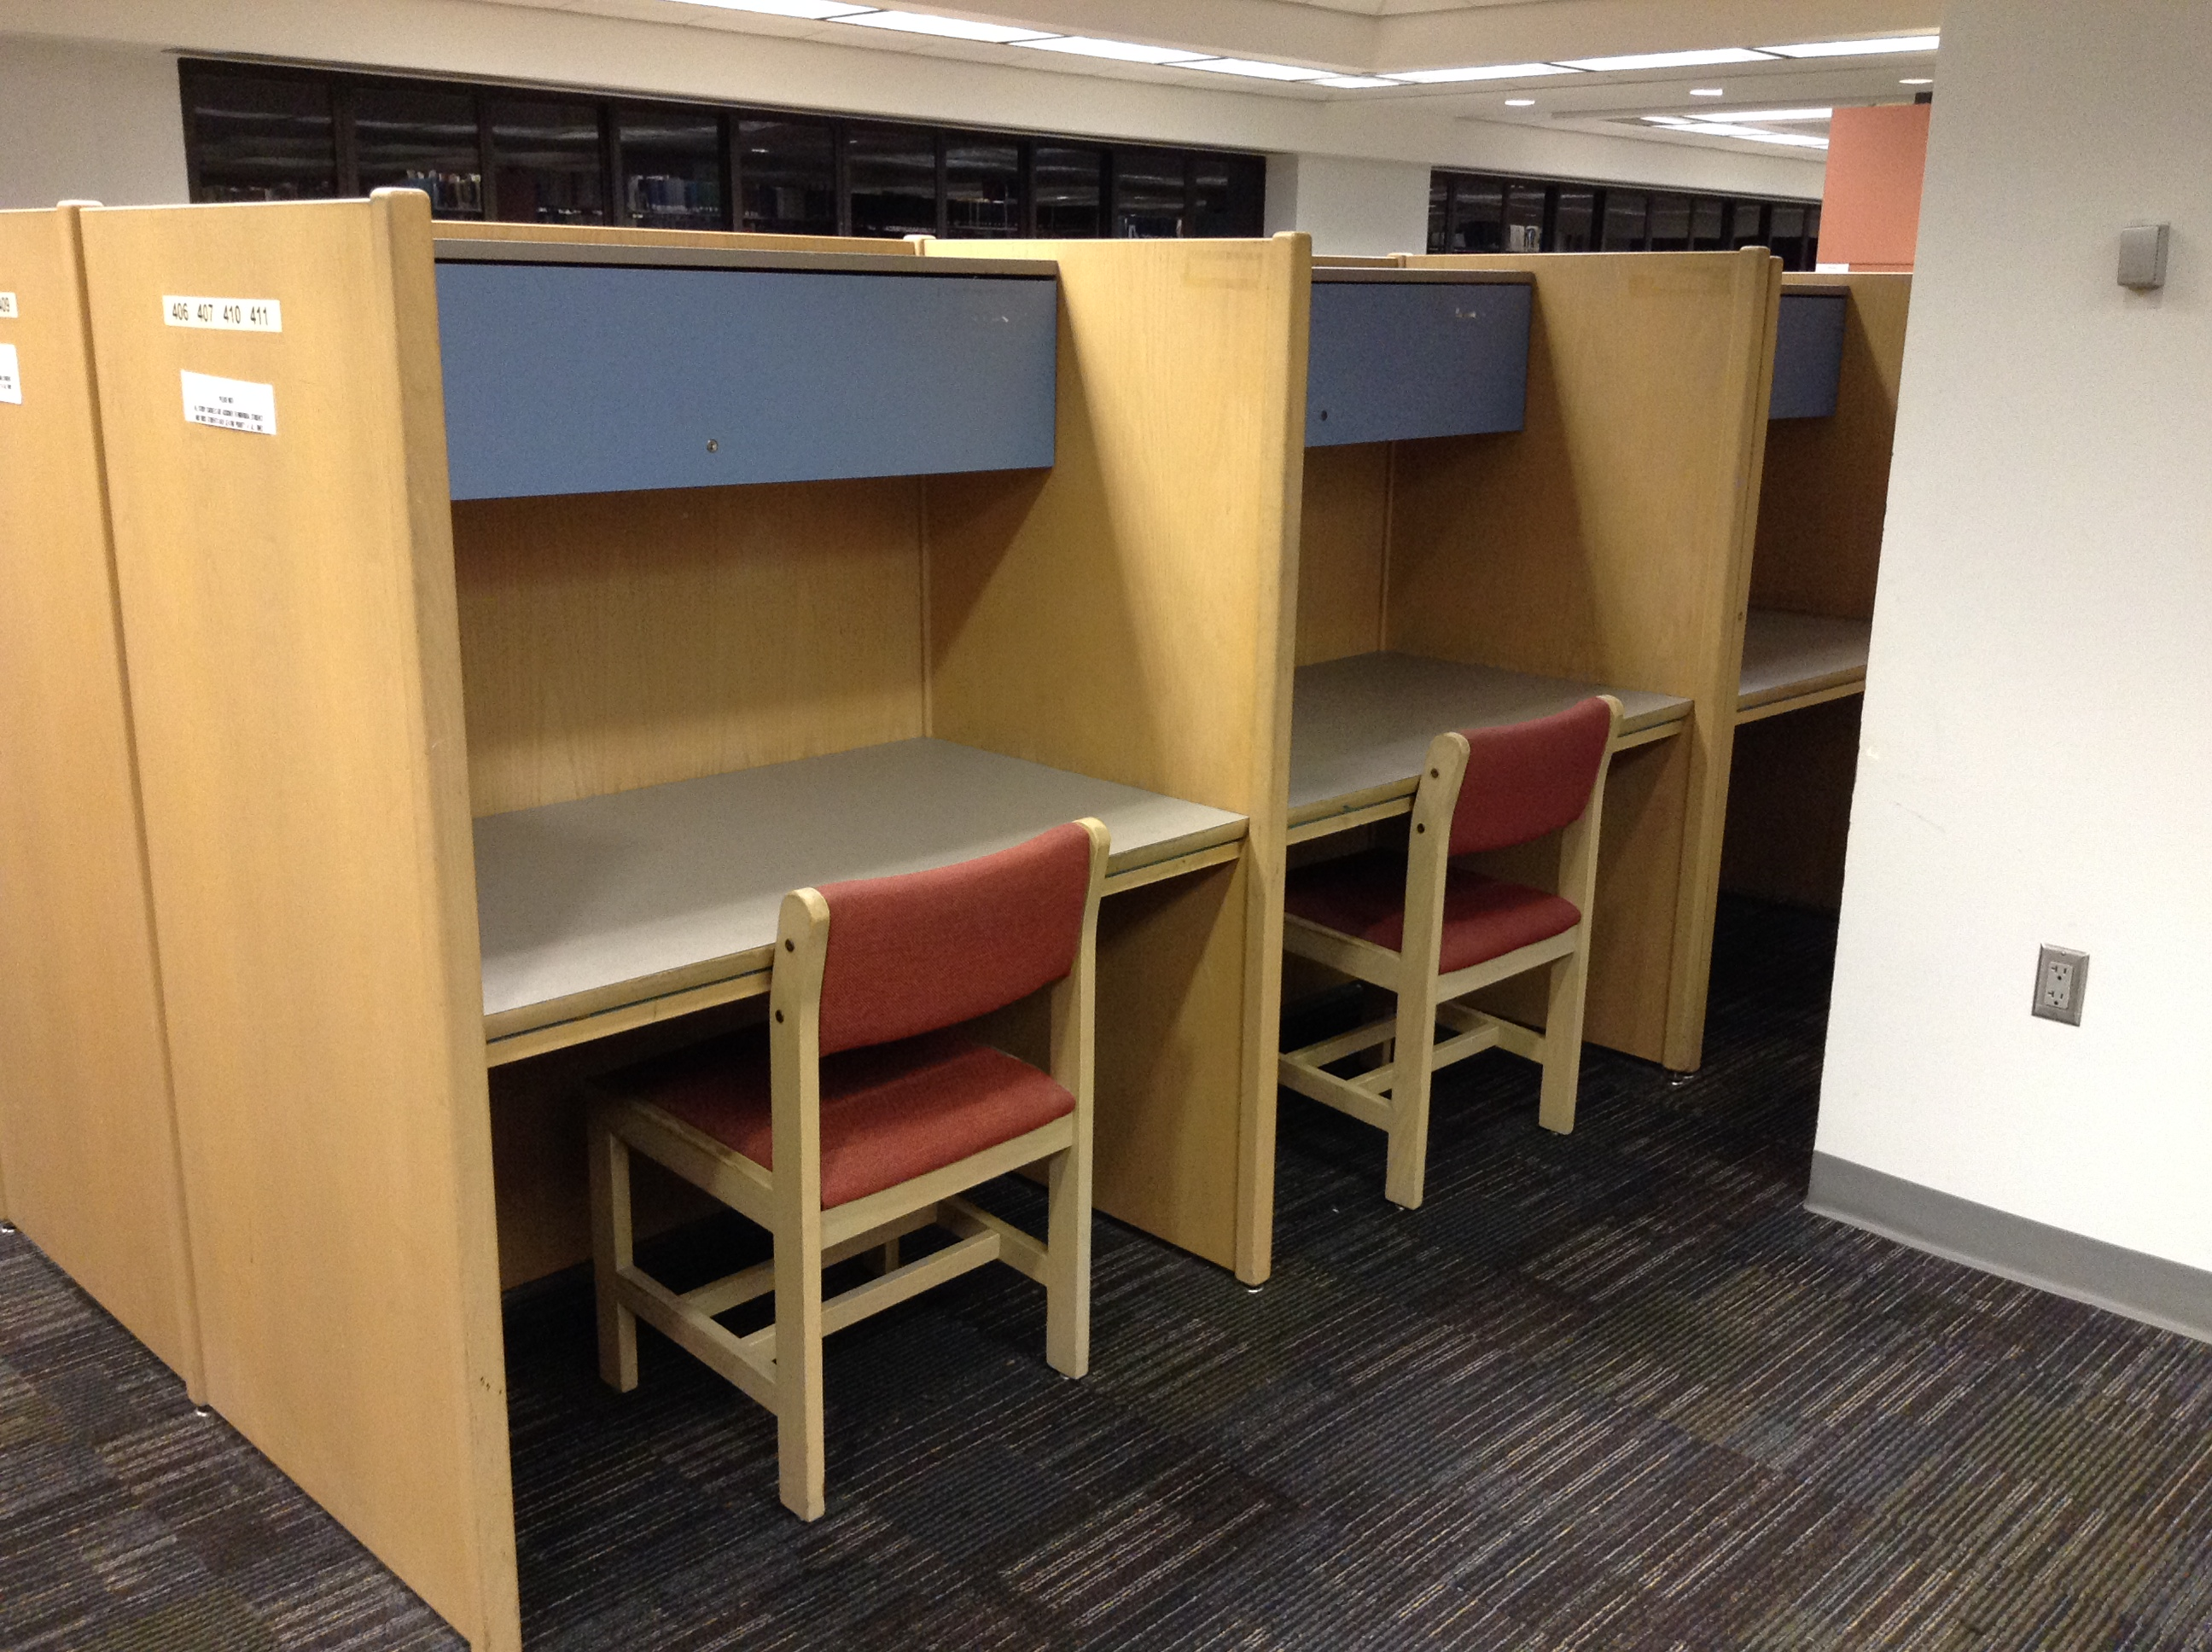 Home - Carrels at Marston Science Library - Guides @ UF at University of Florida